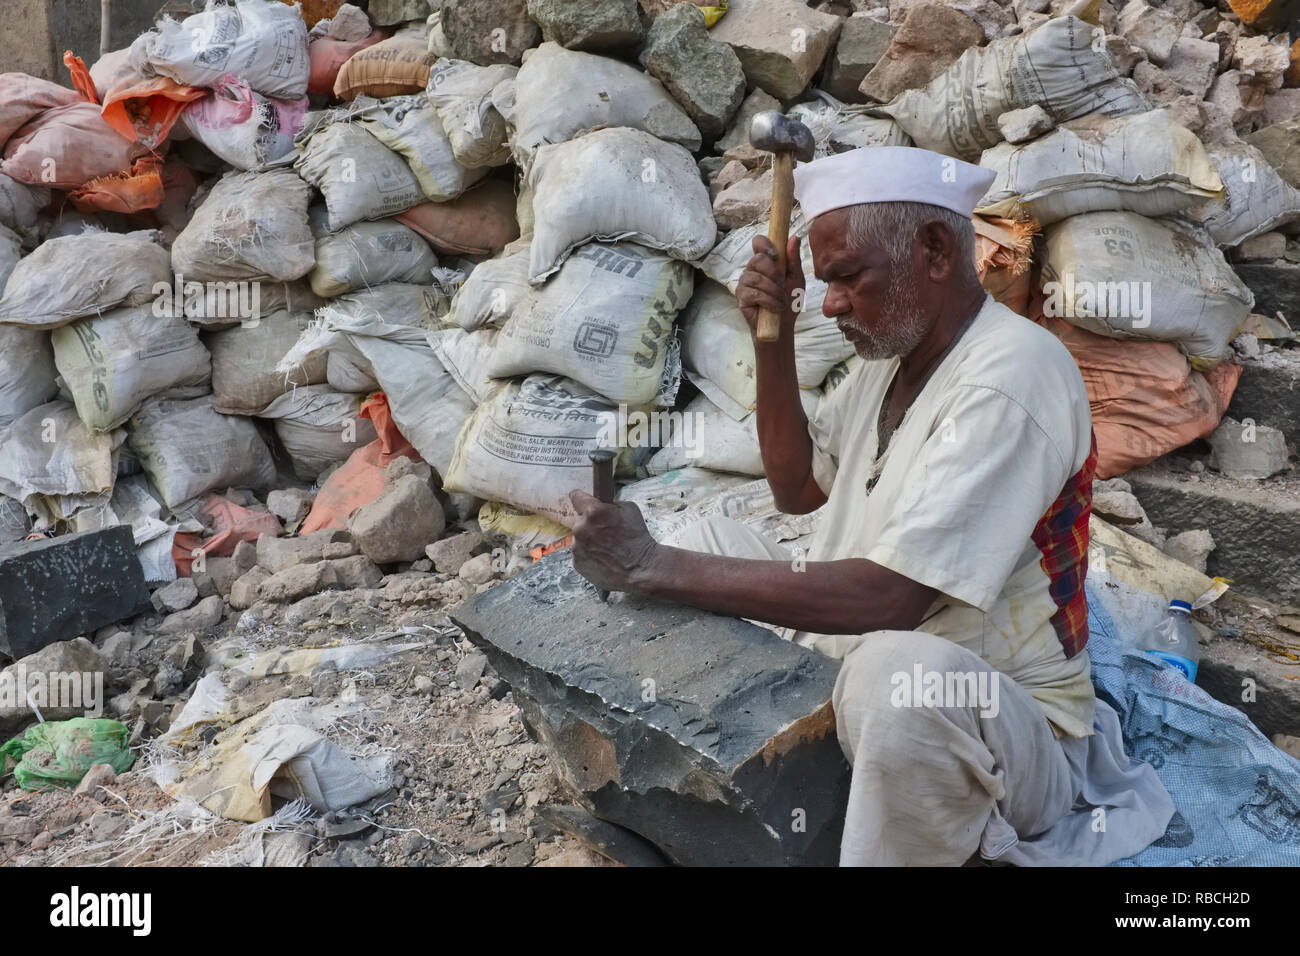 A stonemason in Mumbai, India, carves out a stone from a piece of granite; working w/o protection, many stonemasons risk black lung and eye injuries - Stock Image